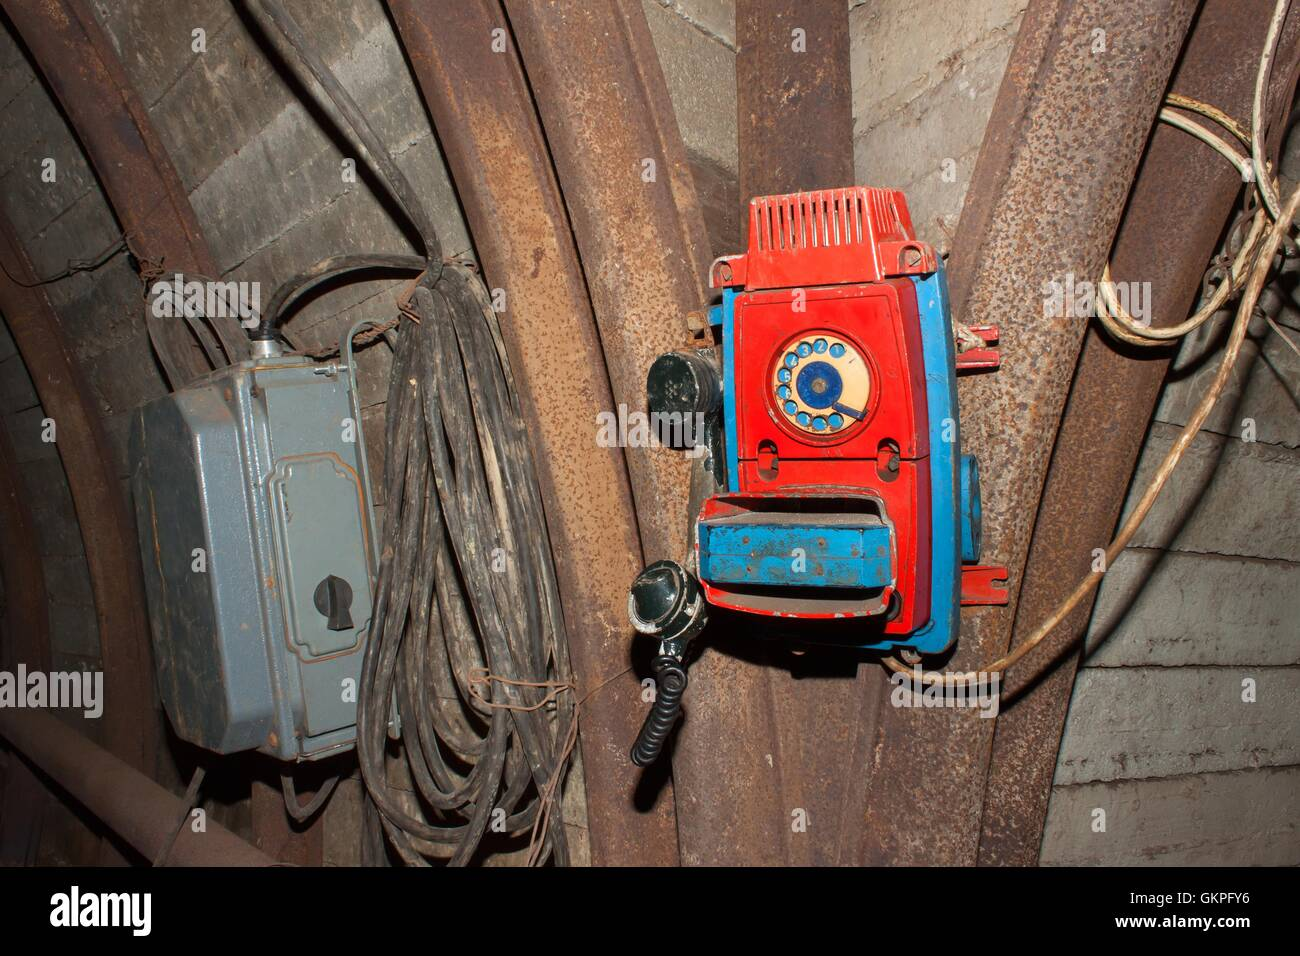 Miner Deserted Stock Photos Images Alamy Old Phone Wiring Coal Mine Communication Line Industrial Used To Communicate With The Miners Underground In